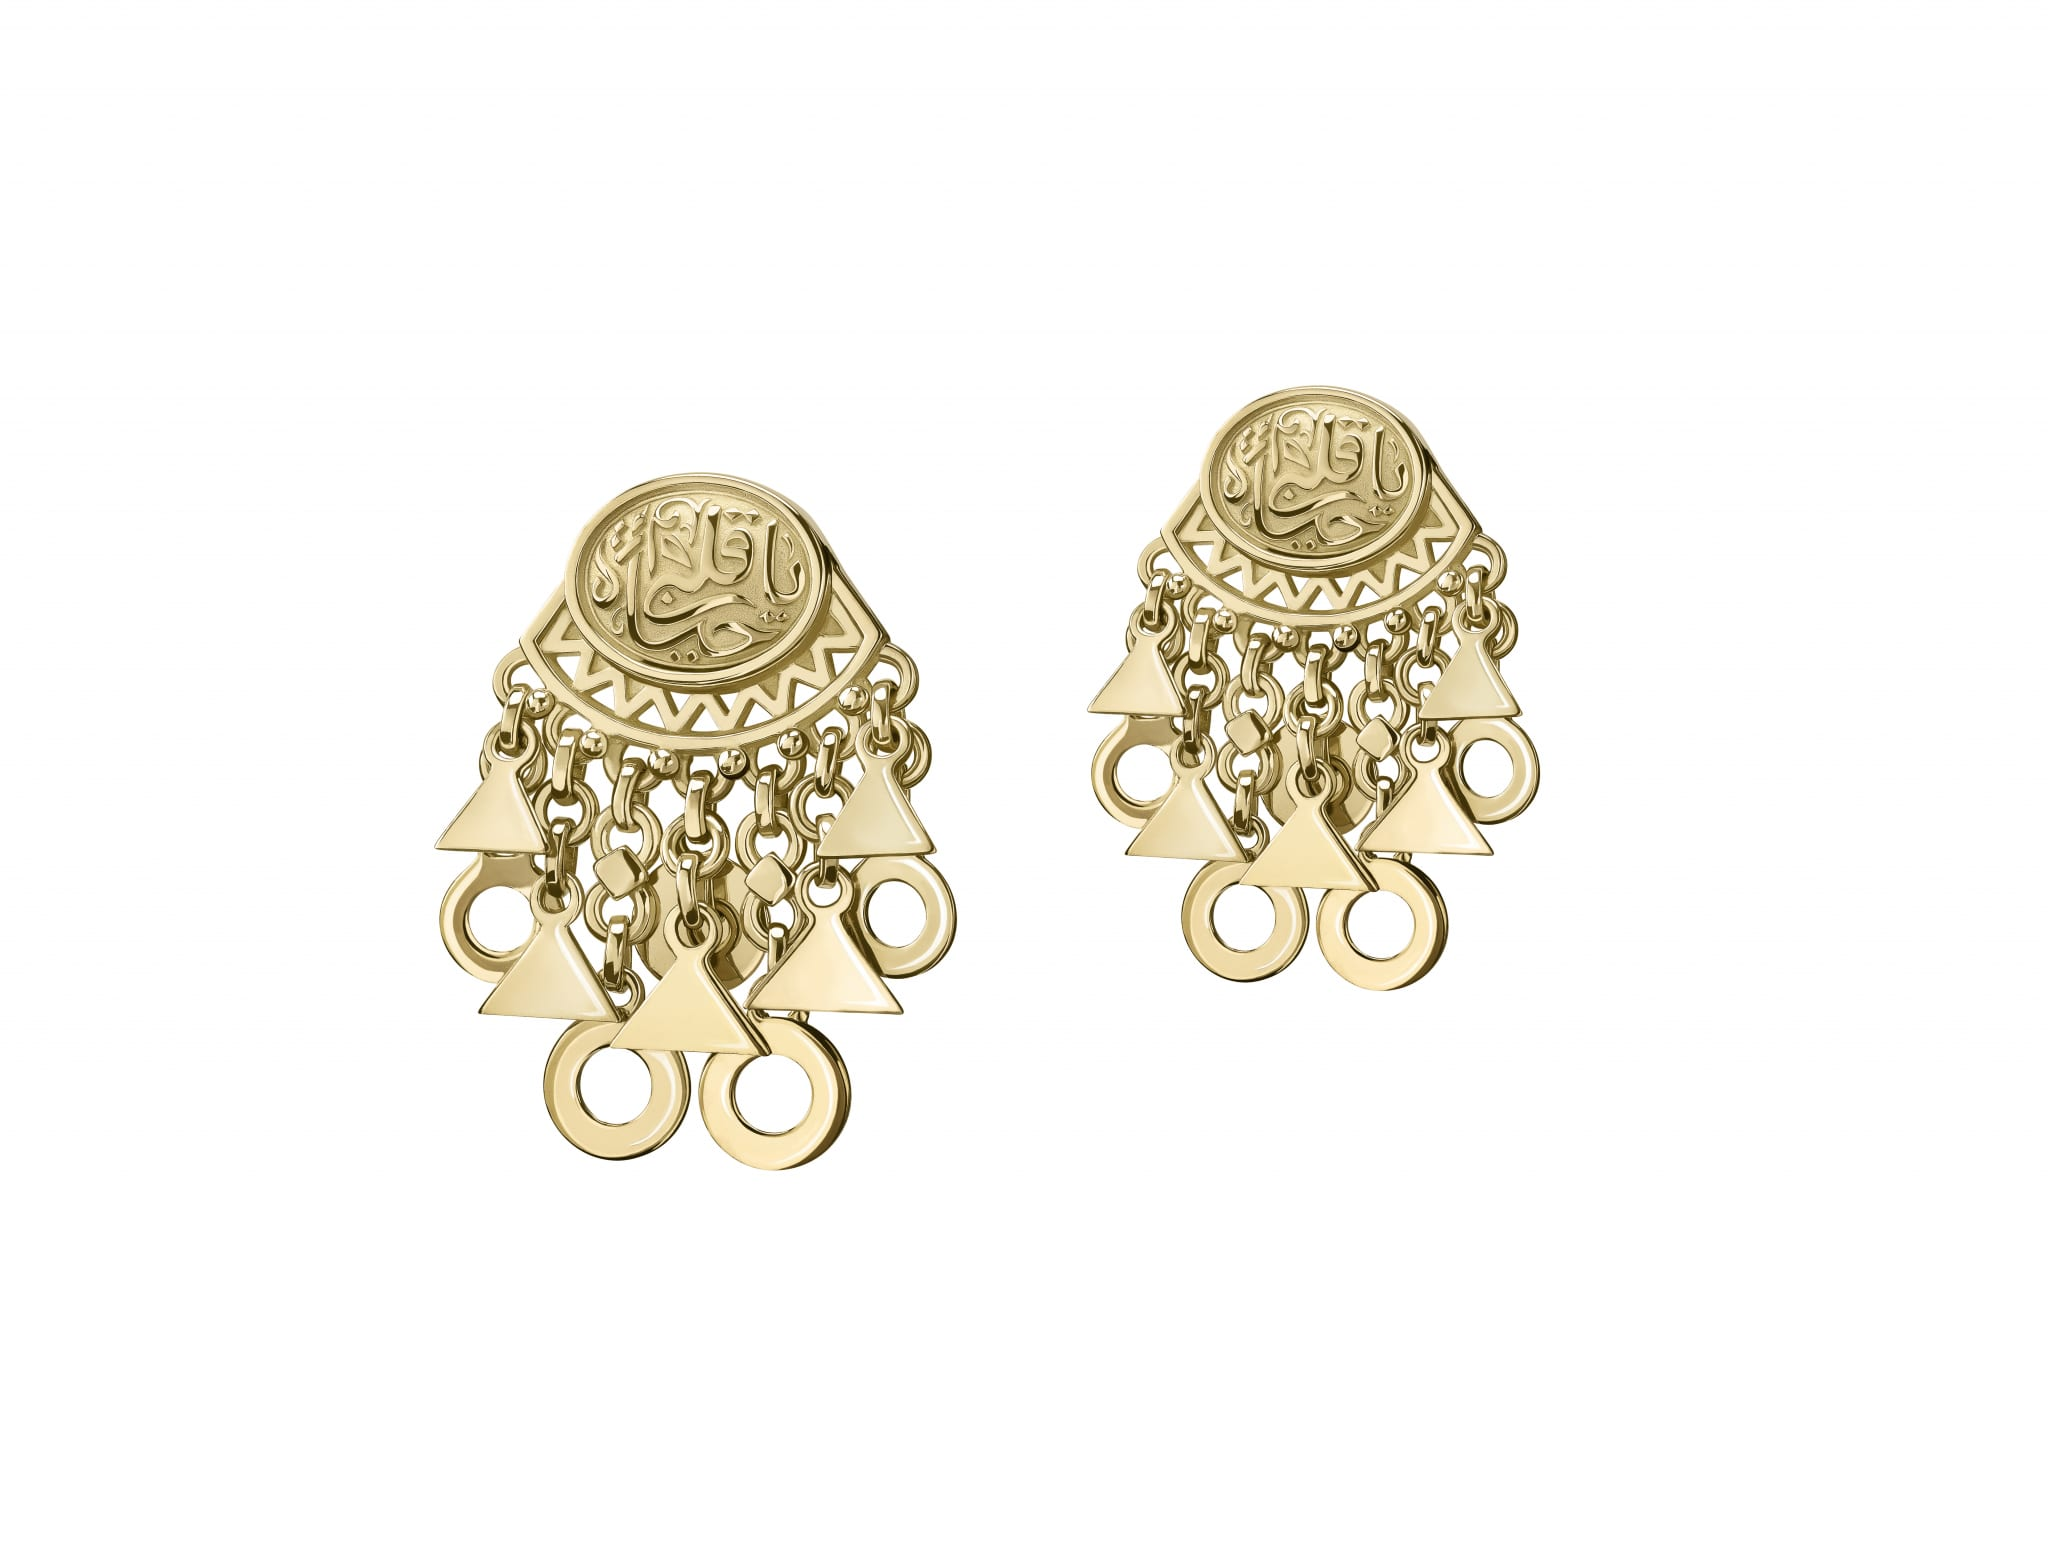 Azza Fahmy_18Kt Gold earring adorned with calligraphy and dangling charms